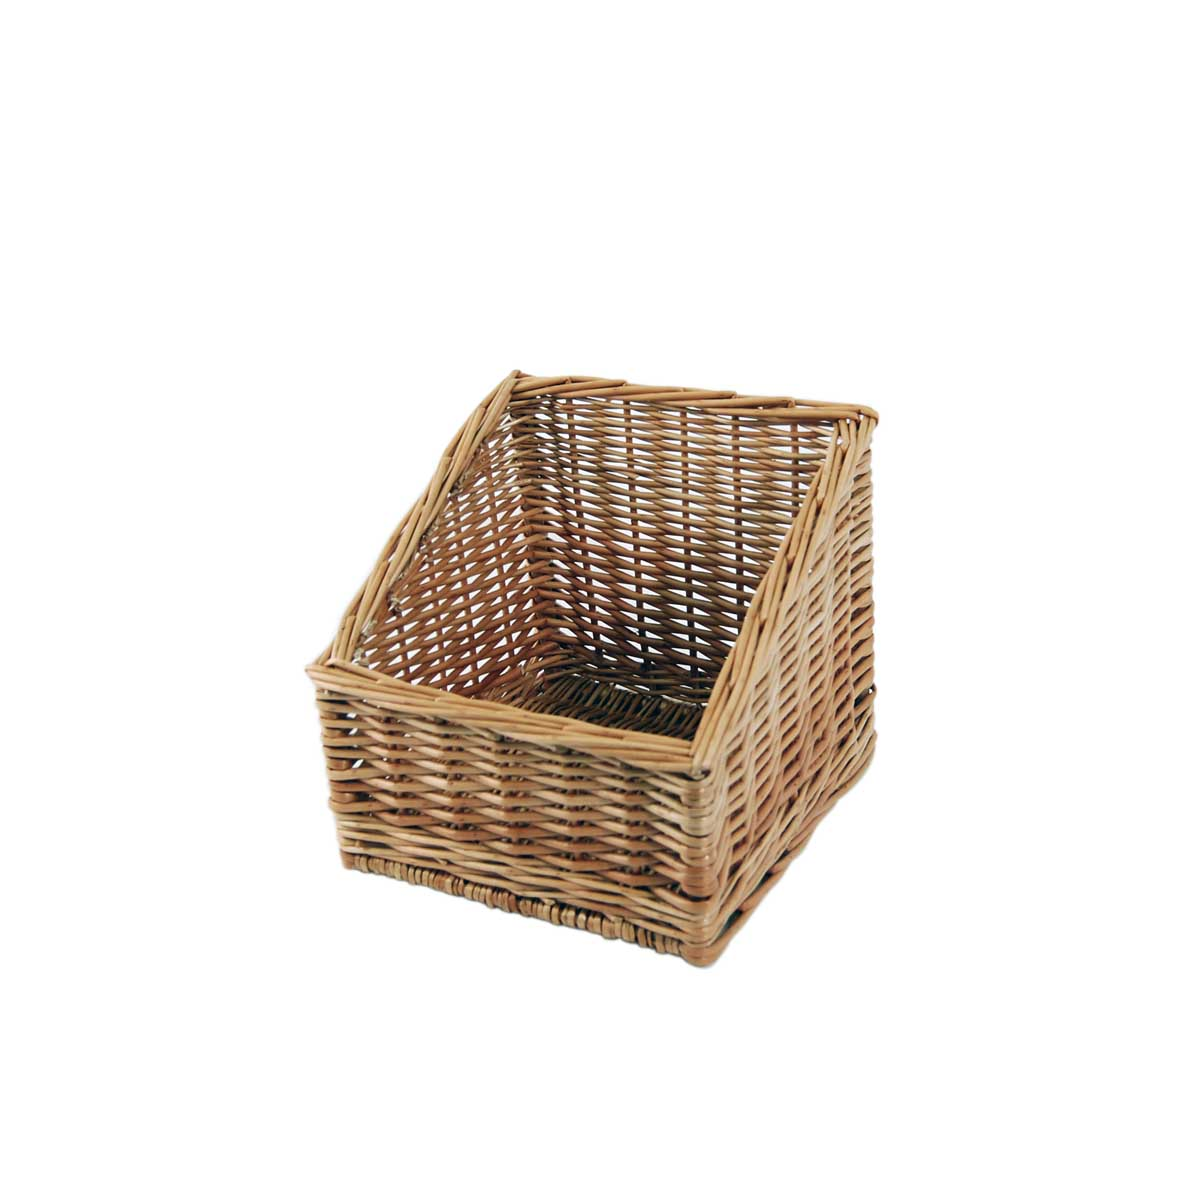 Image of: Wicker Display Baskets